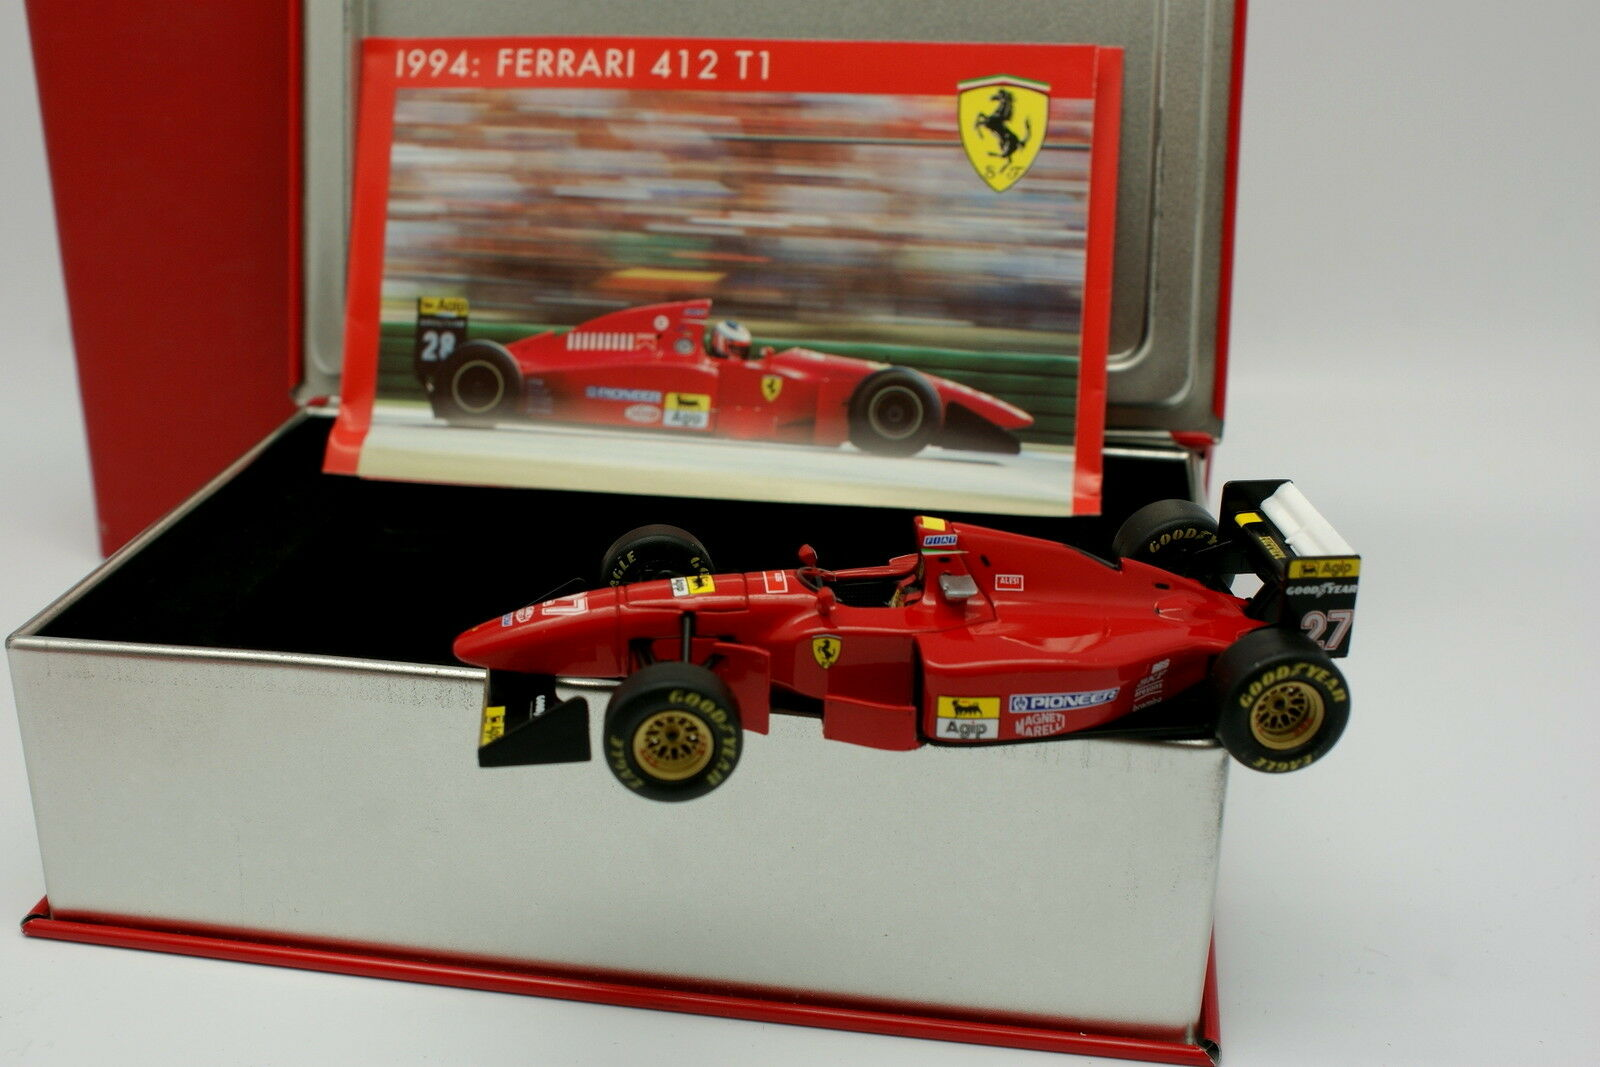 Hot Wheels La Storia 1 43 - F1 Ferrai 412 T1 Alesi 1994